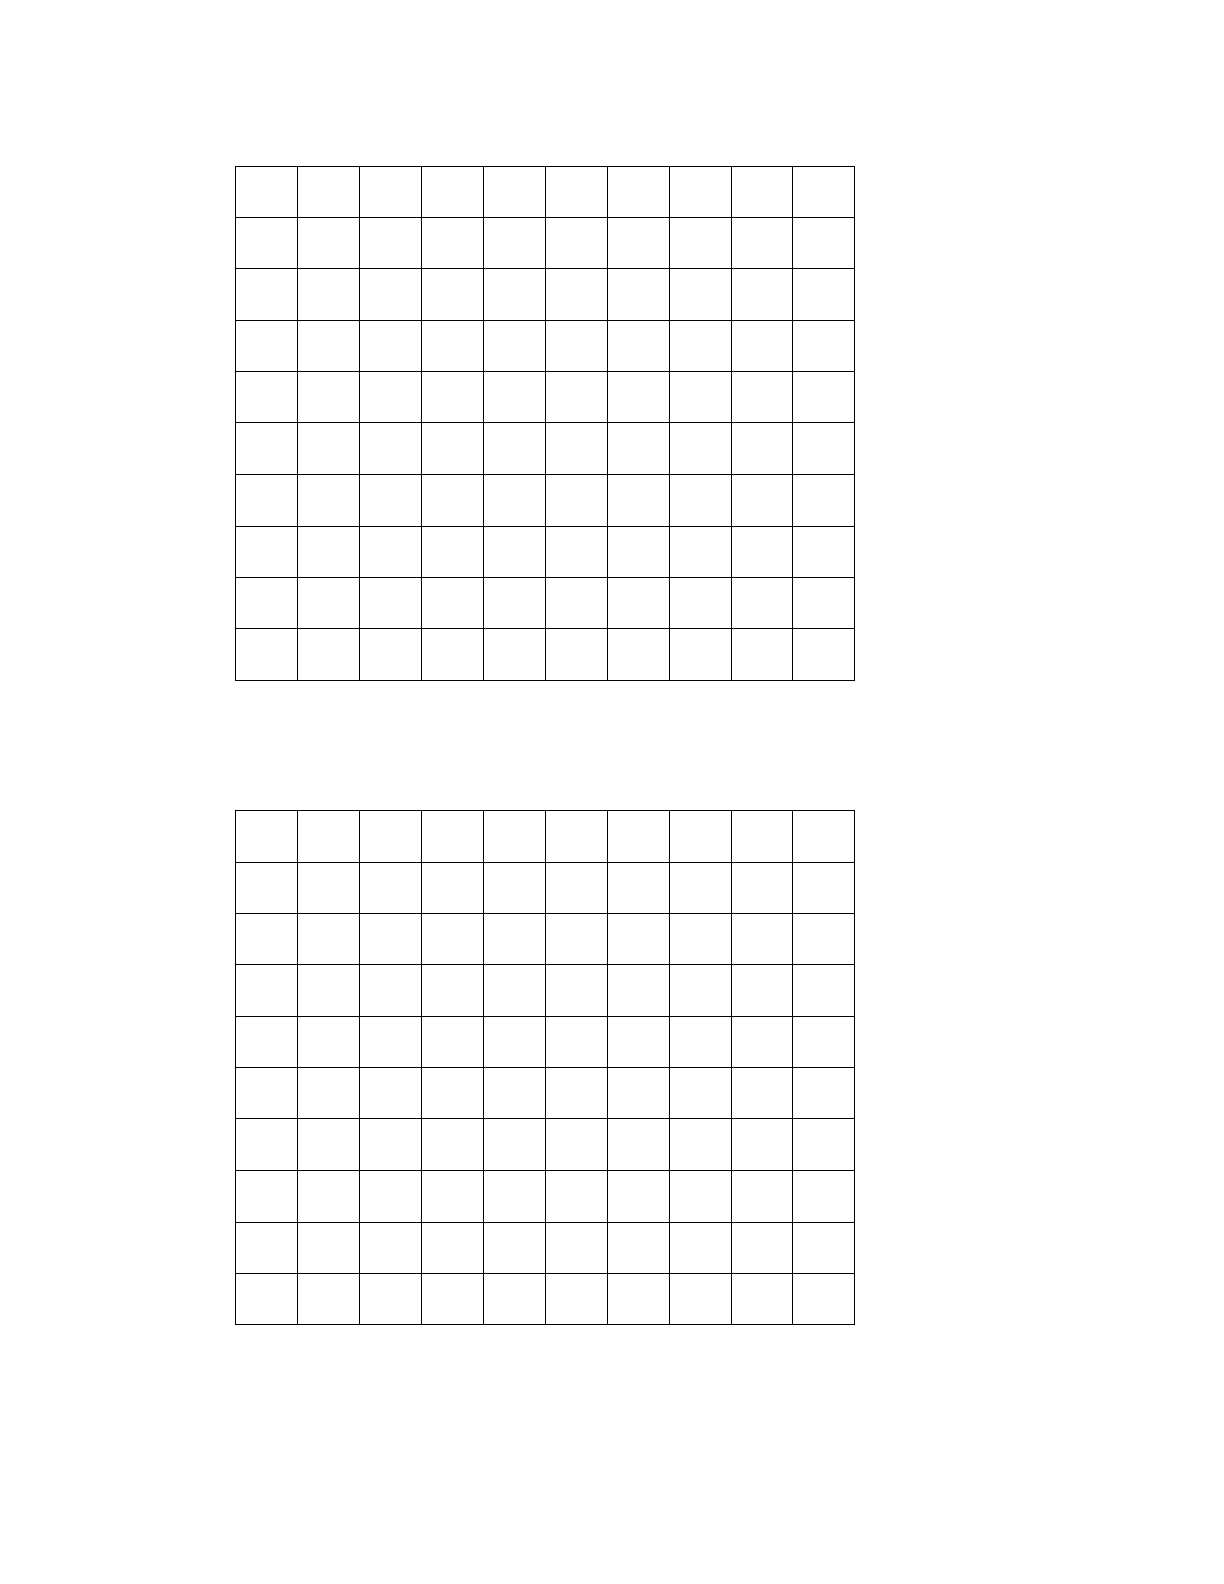 graphic about Printable Battleship titled Printable Battleship Recreation Totally free Down load